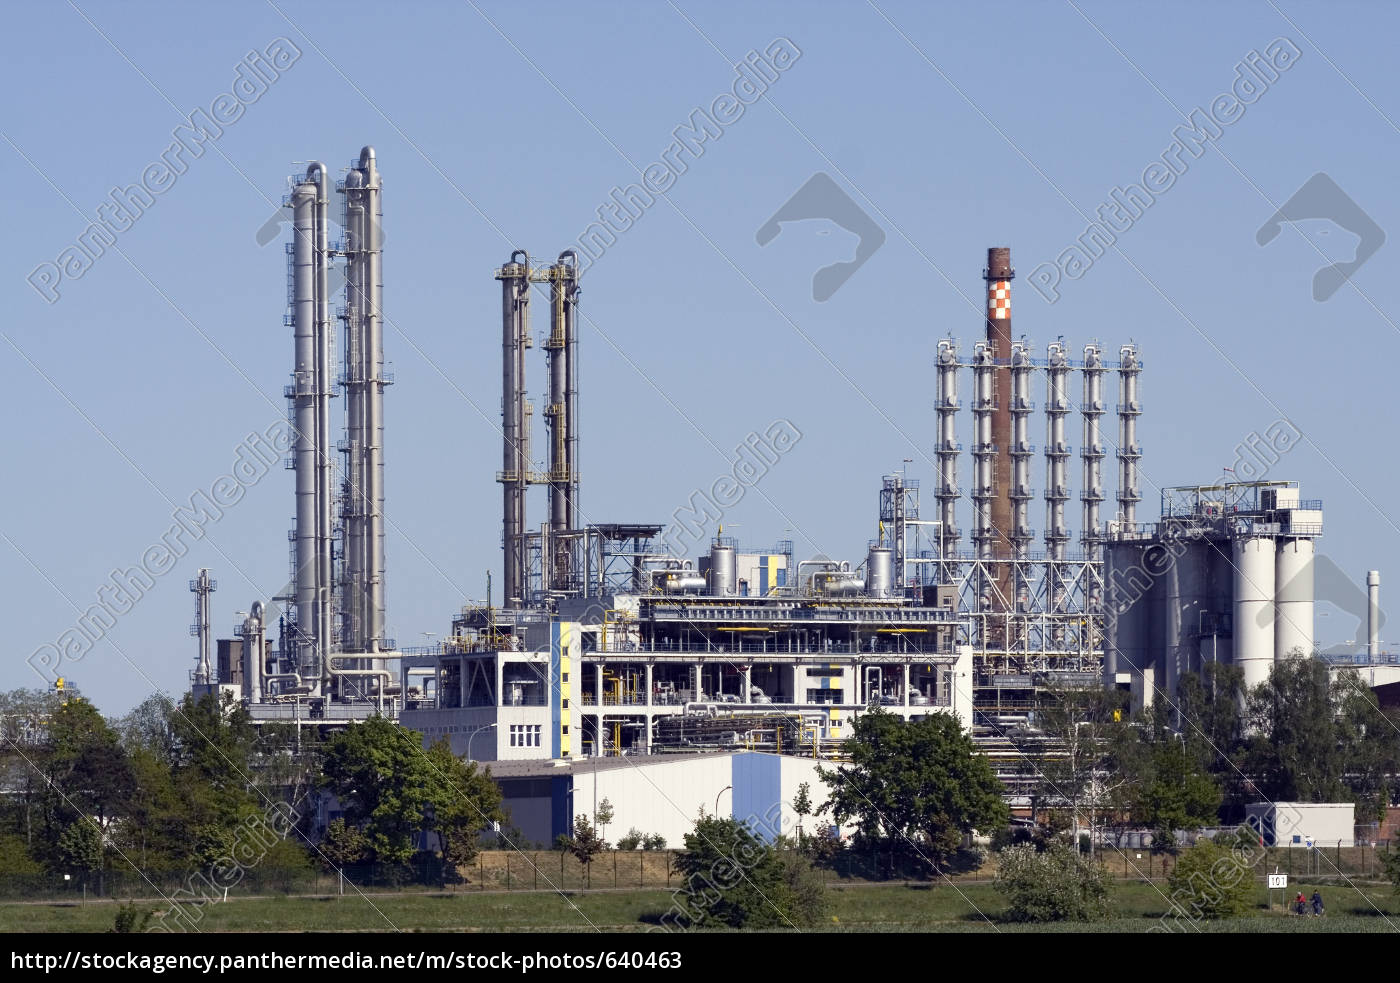 chemical, industry - 640463